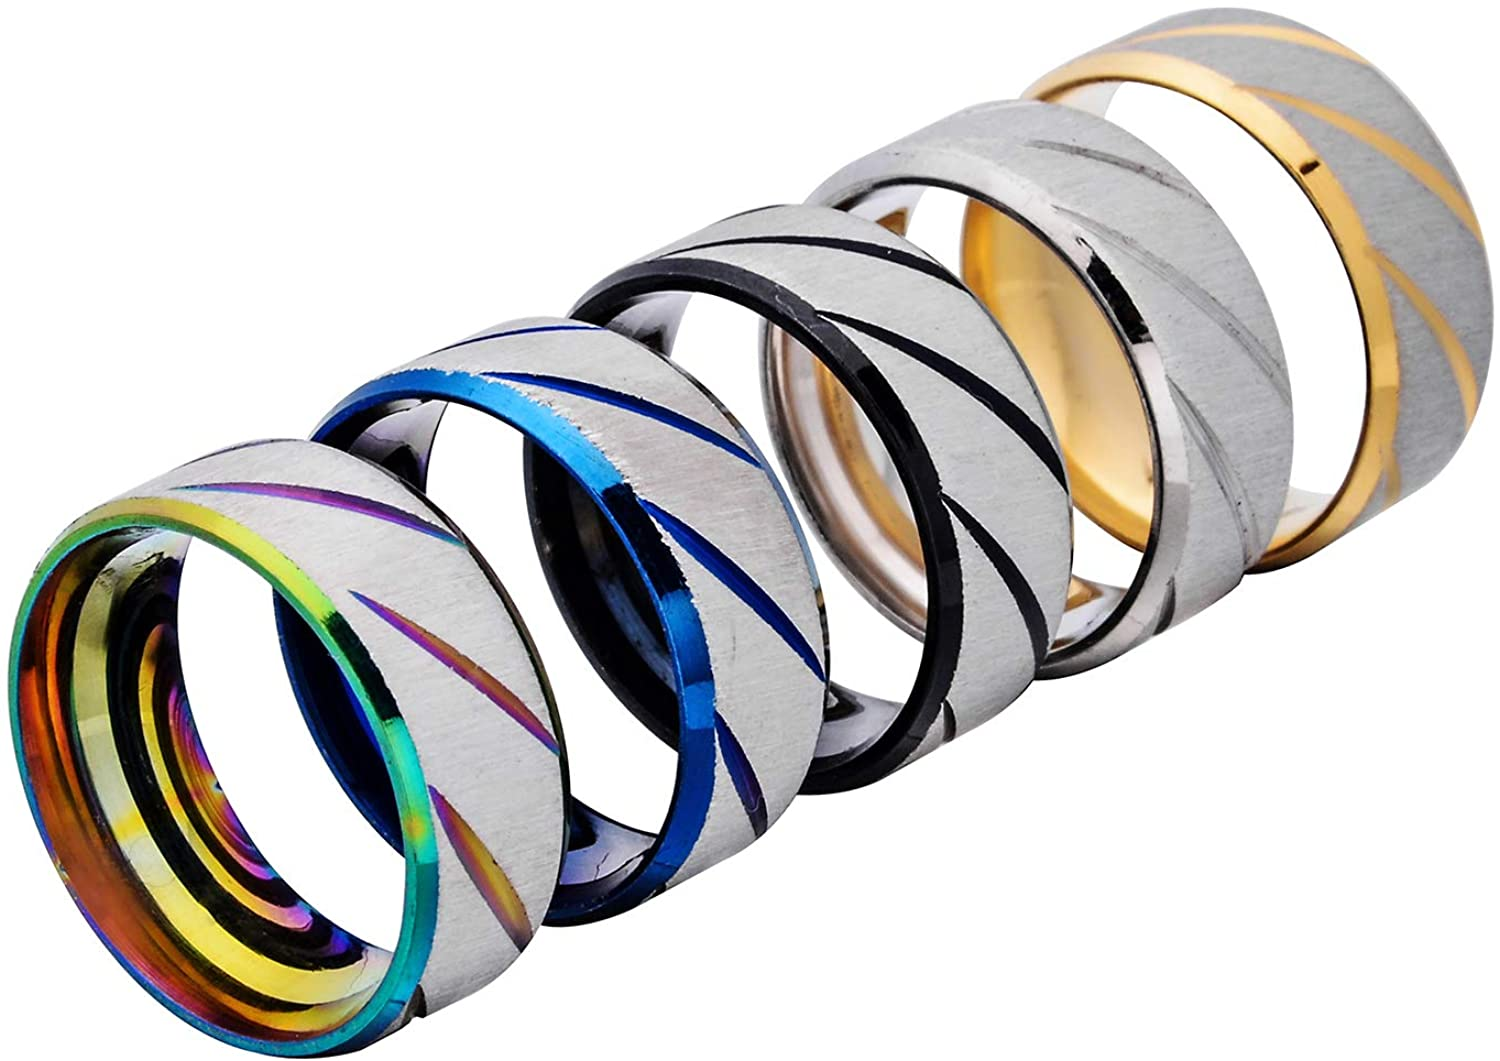 W WOOGGE Spring new work 5 Pack of Stainless Steel Wed Worry Lucky for Men Translated Rings